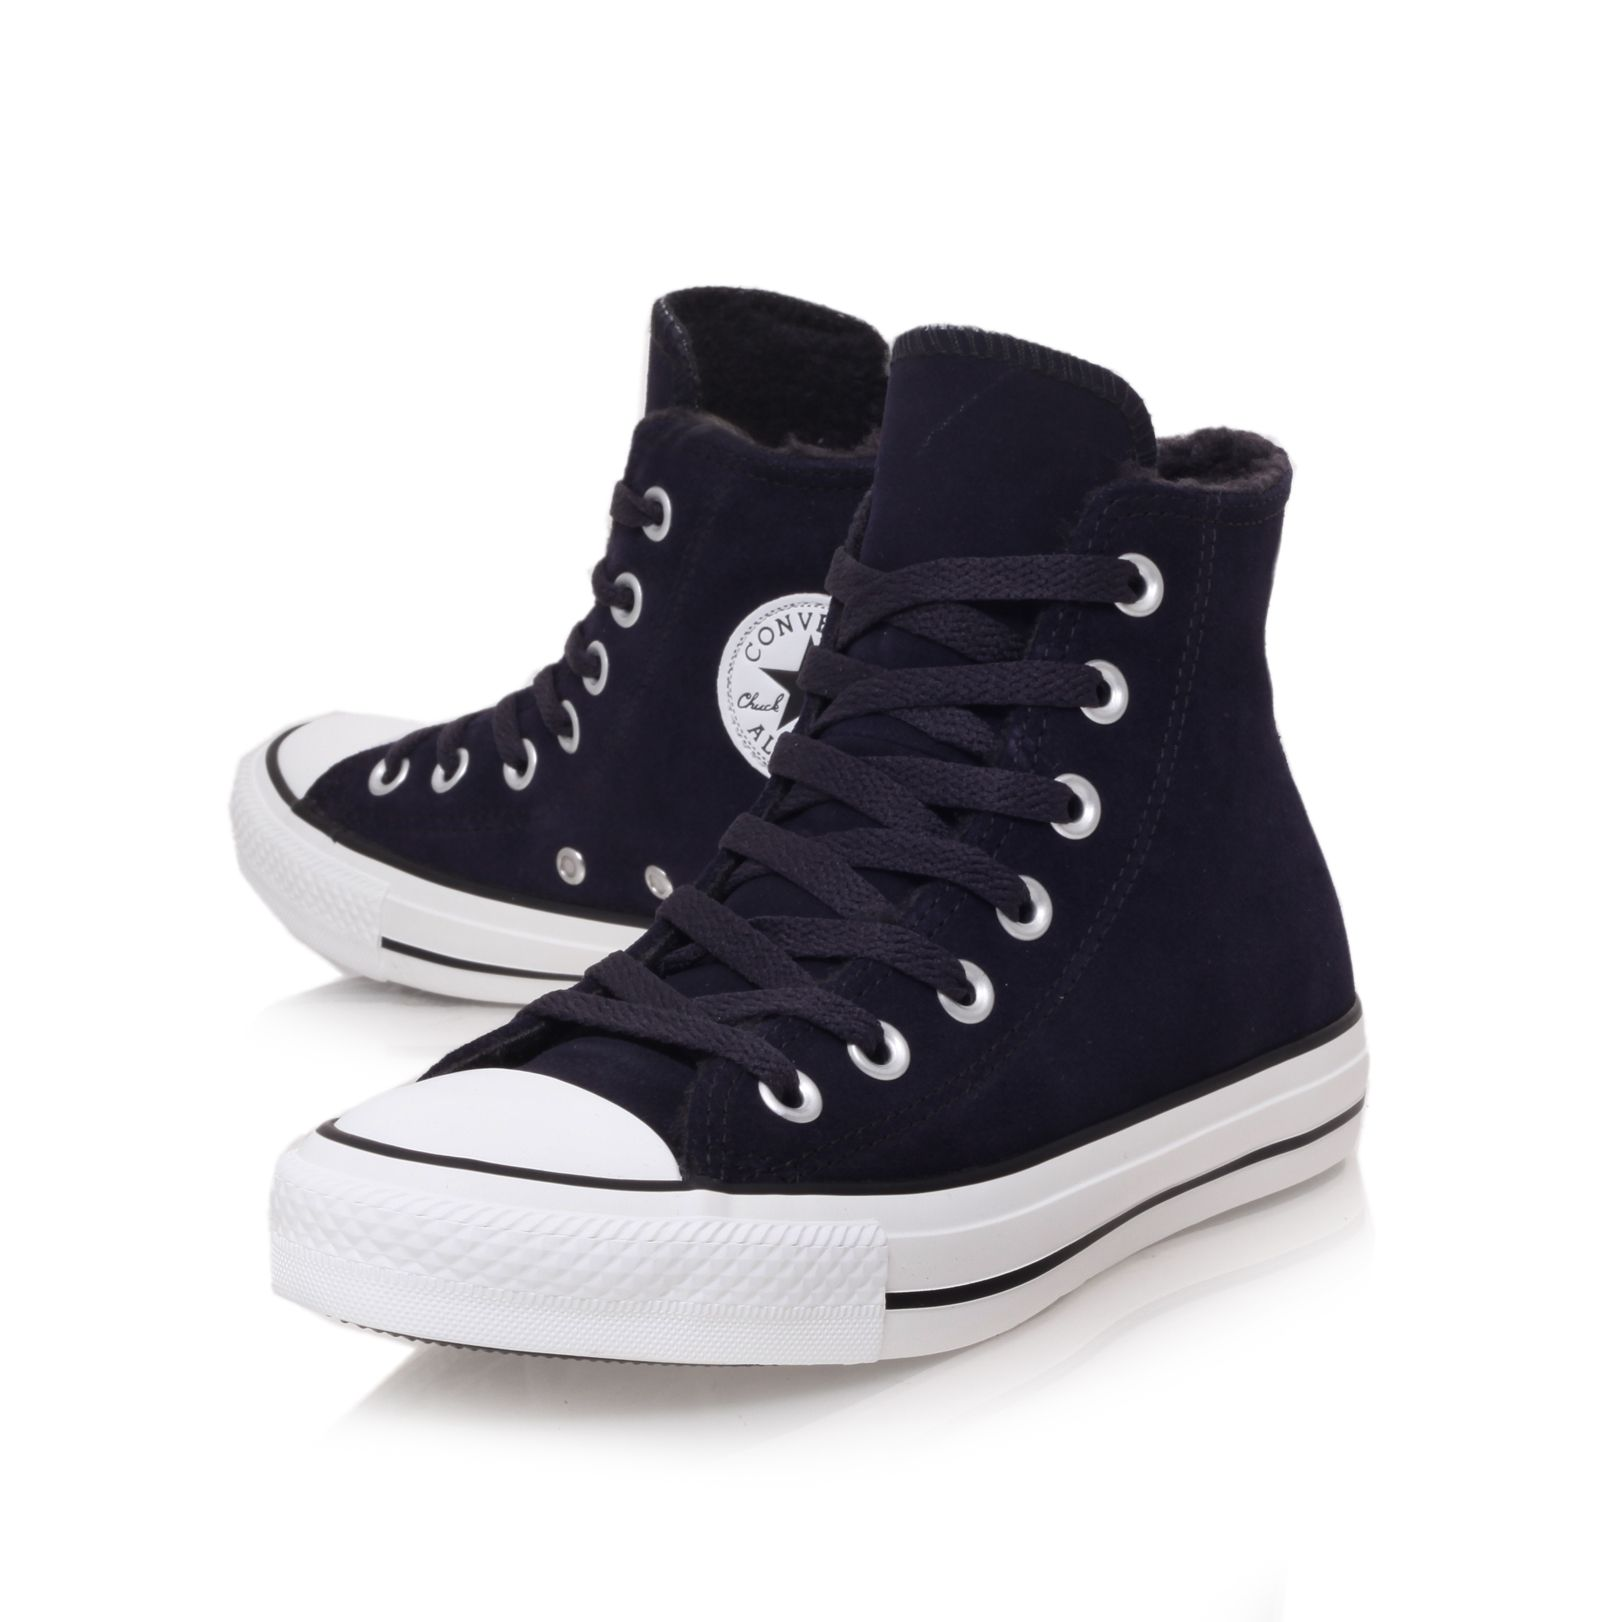 In the wonderful world of fashion, Chucks (AKA Converse sneakers) are like the LBDs for our feet. Oh-so-comfortable and also exuding an effortless hipster cool, Chucks are our go-to footwear any time of day.